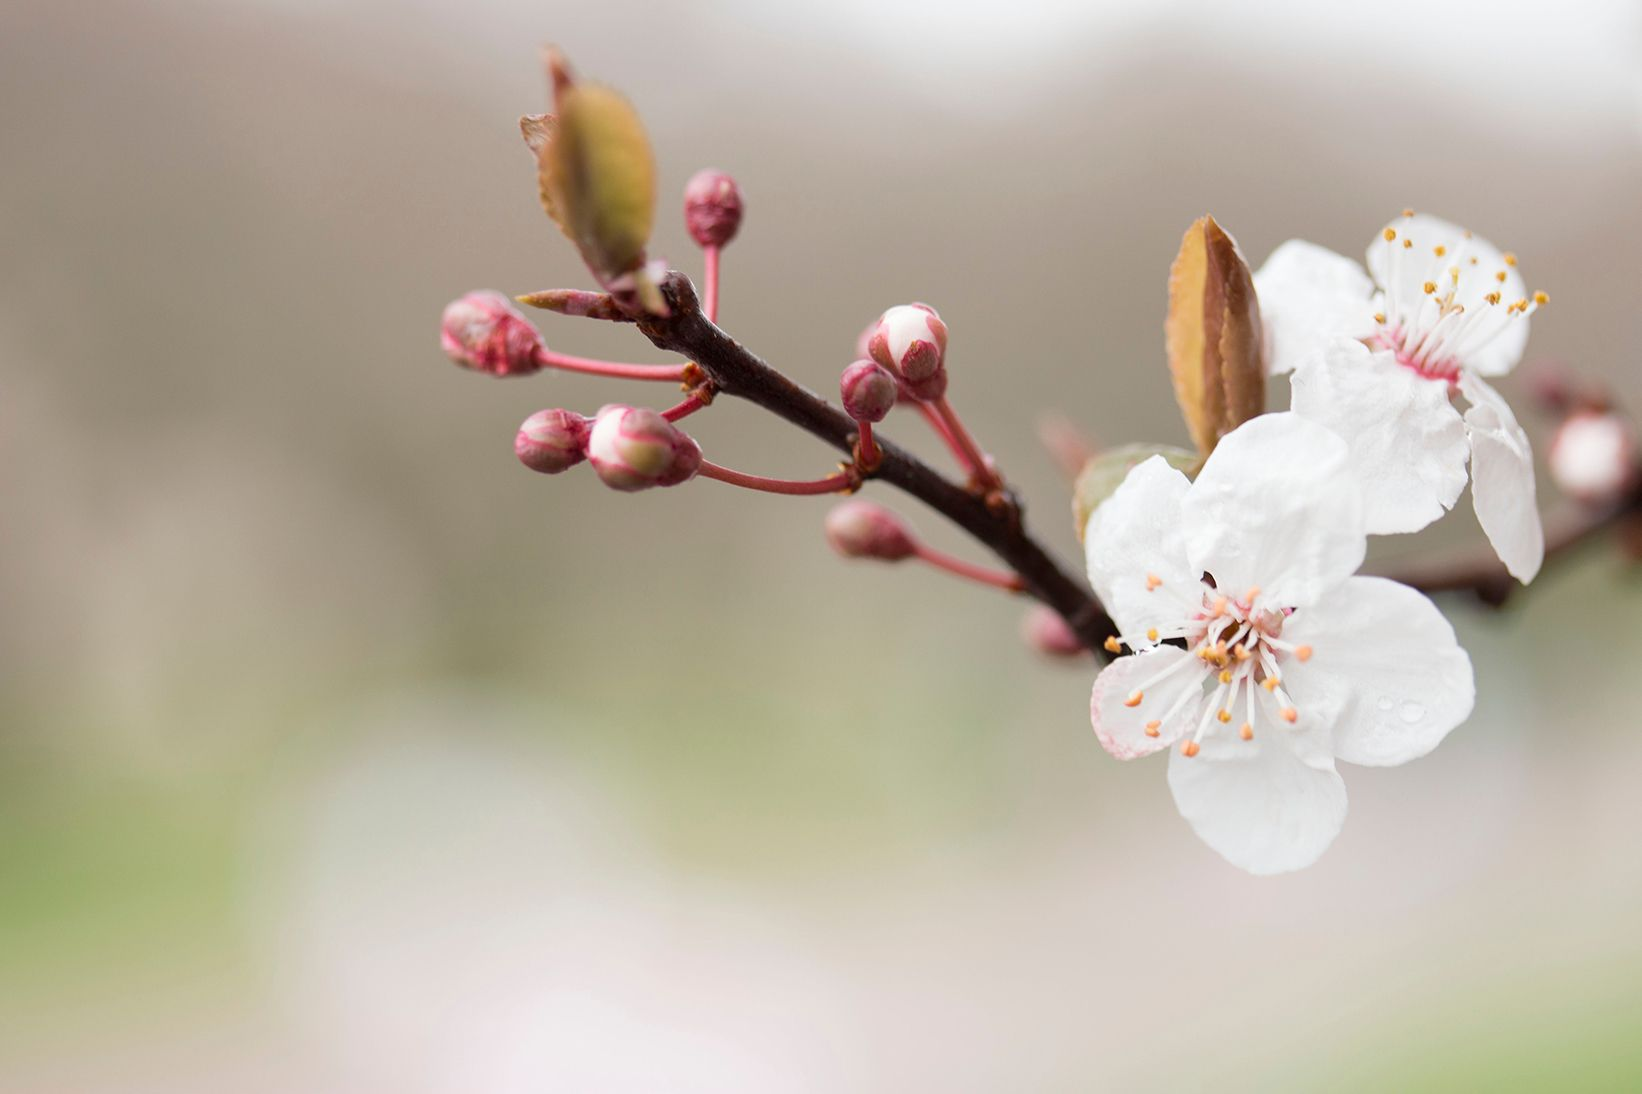 Pin By Xxmedium On Flower Meanings Flower Meanings Cherry Blossom Blossom